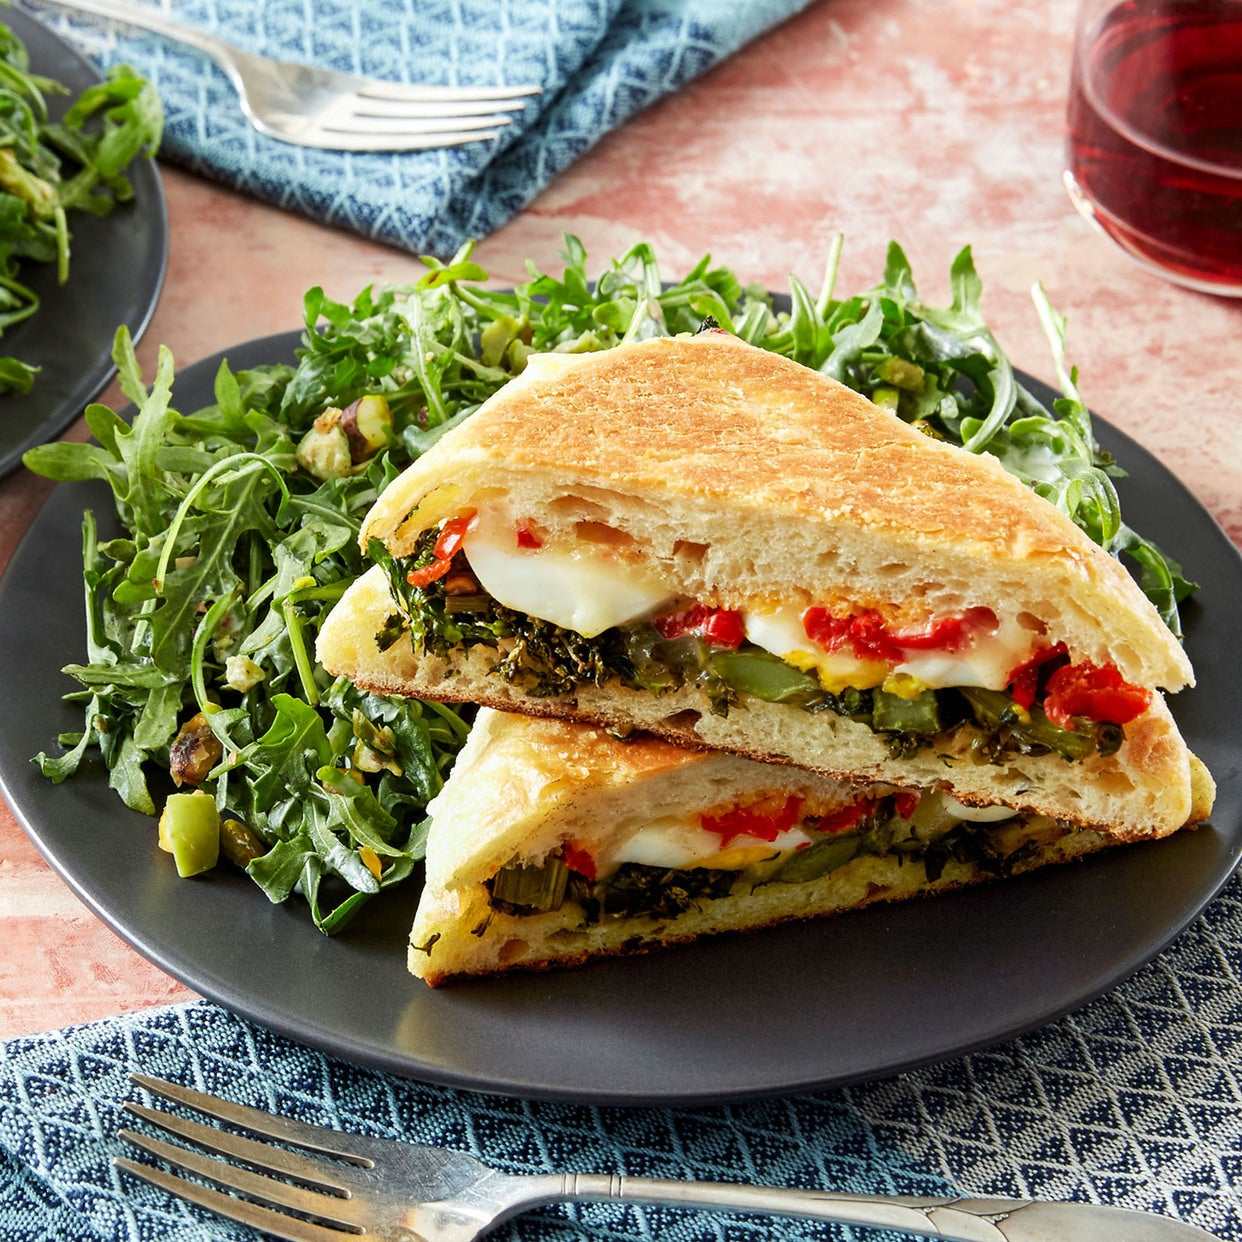 Baby Broccoli & Fontina Paninis with Hard-Boiled Egg & Arugula Salad